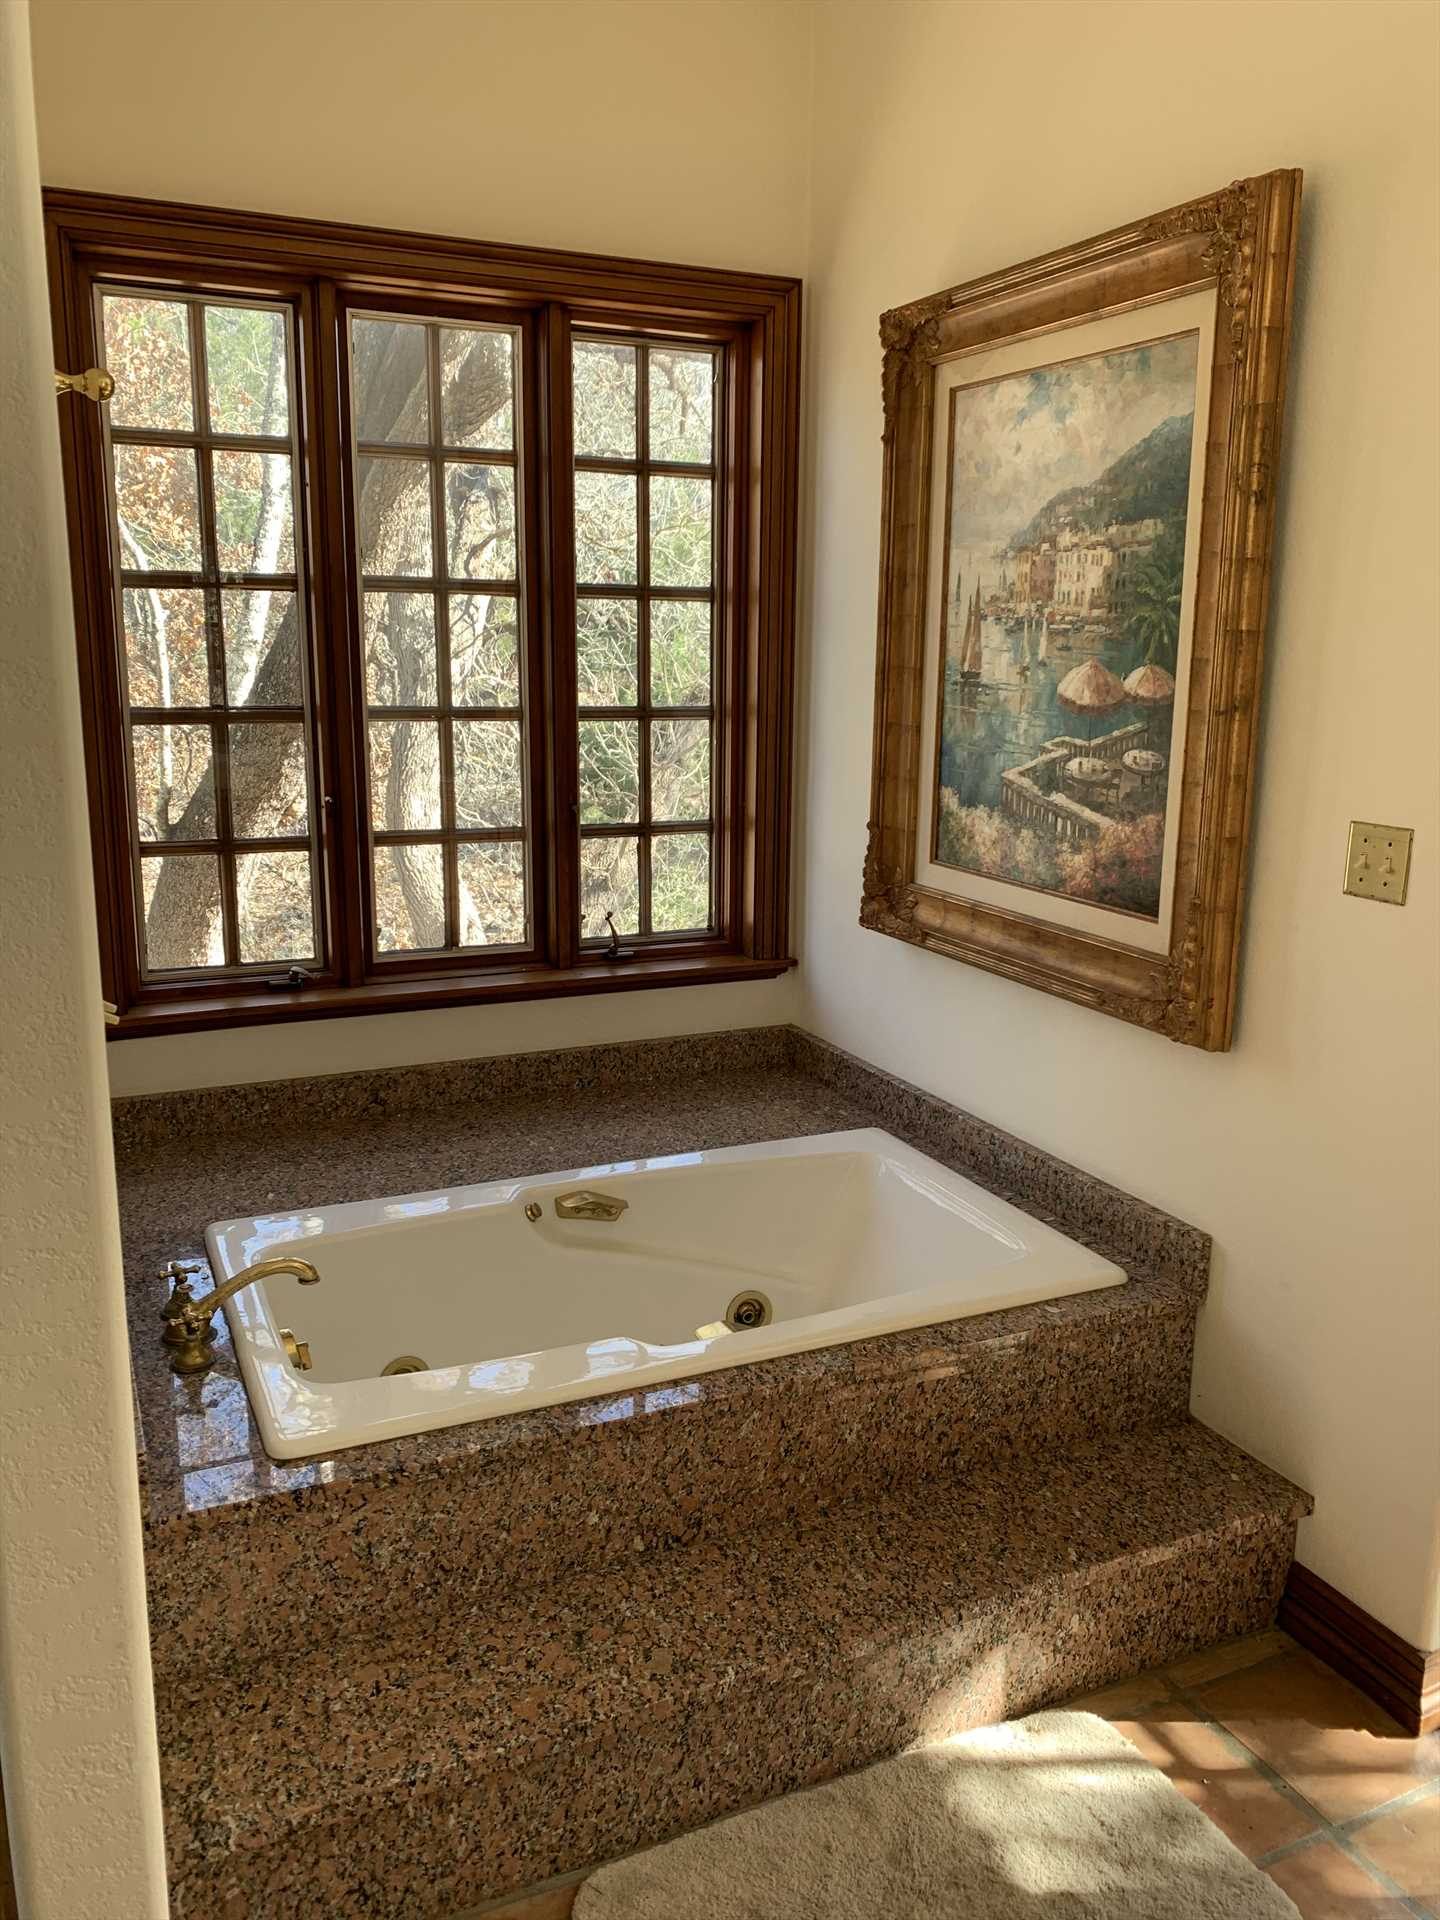 Soak in the garden tub in the Homestead, and feel all your tension melt away!